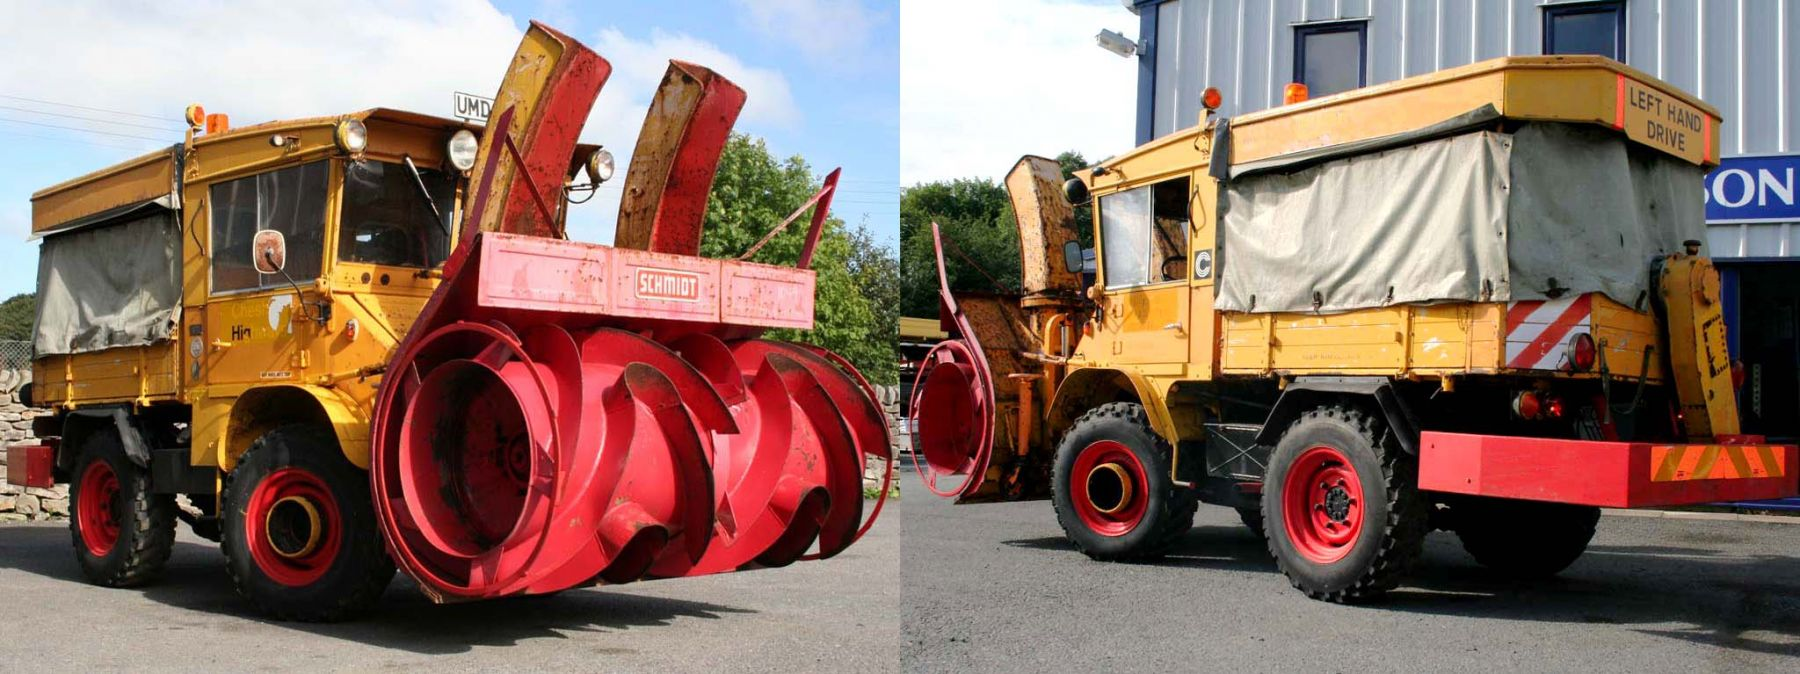 Vintage U411 Snow Blower Exported to North America